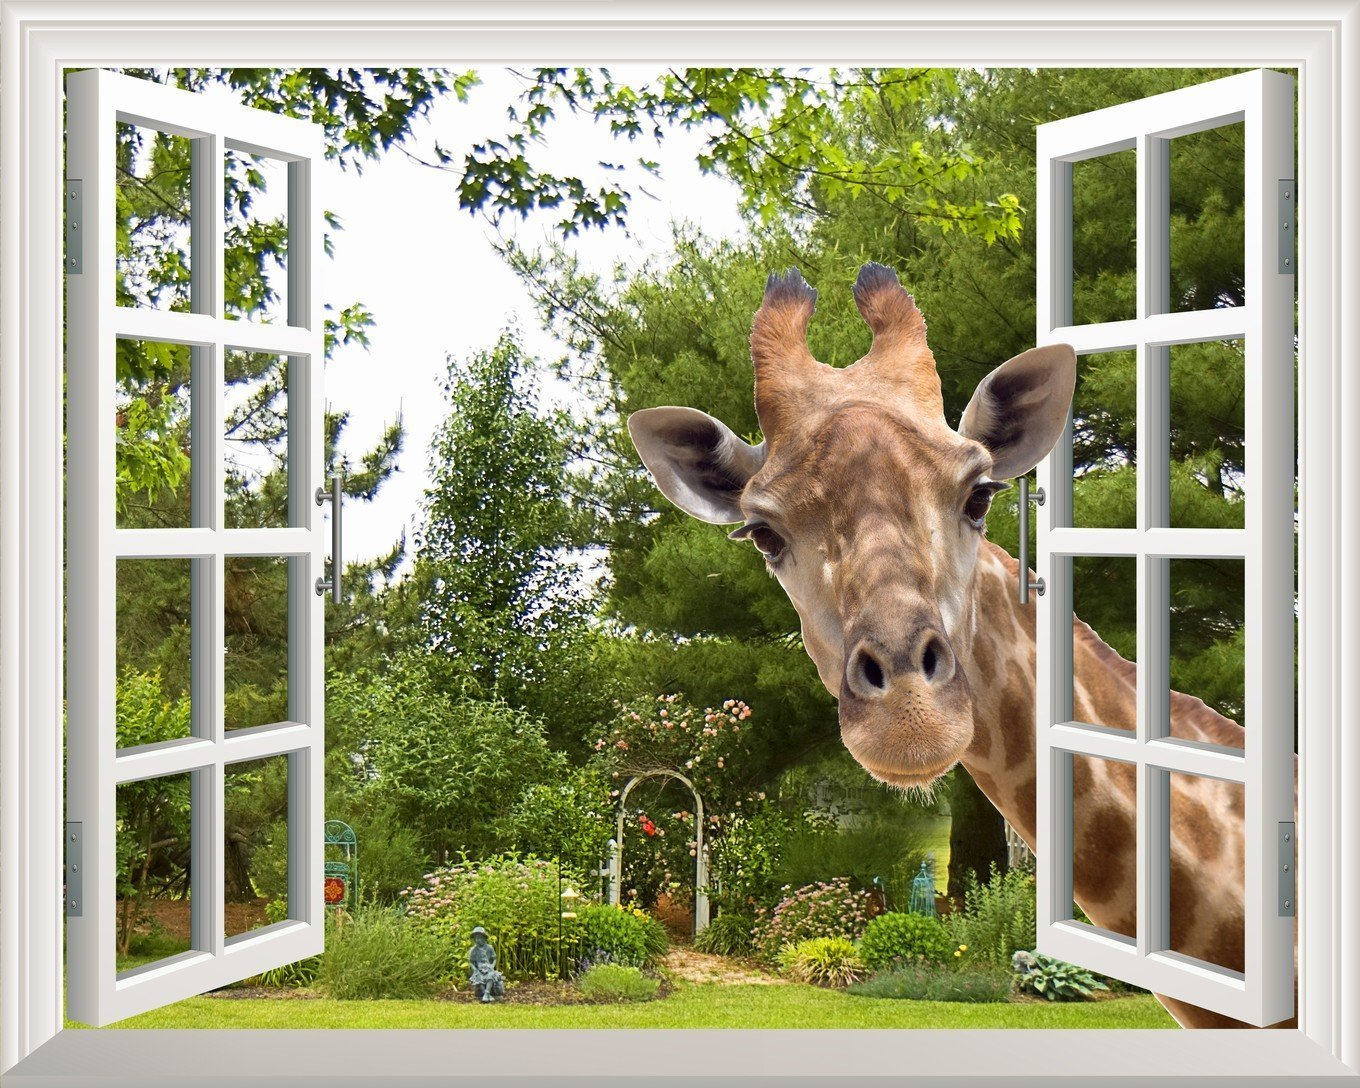 wall26 com art prints framed art canvas prints greeting wall26 creative wall sticker removable wall art wall decal a curious giraffe sticking its head into an open window cute funny wall mural 24